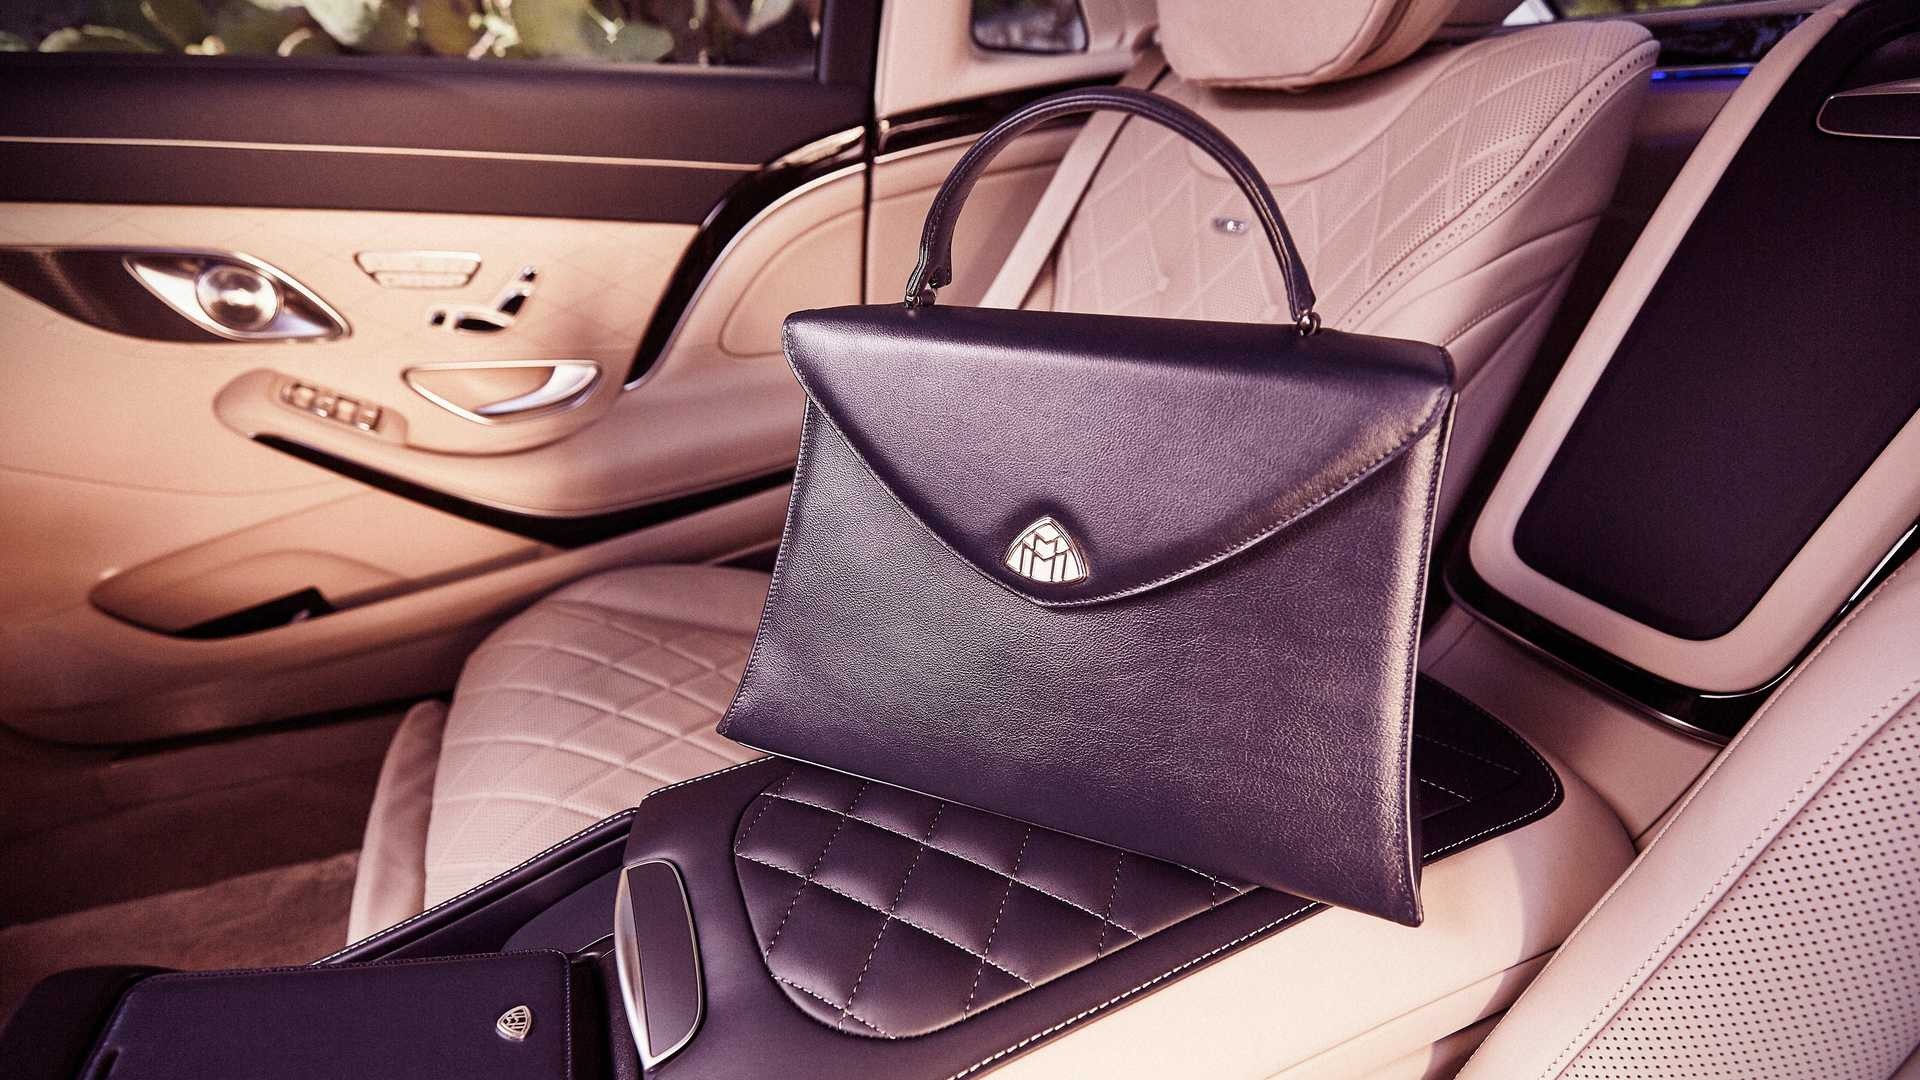 Icons of Luxury – the internal subdivision of the company dedicated to the releasing new deluxe options and accessories for the owners of Maybach vehicles – has just launched a new collection.